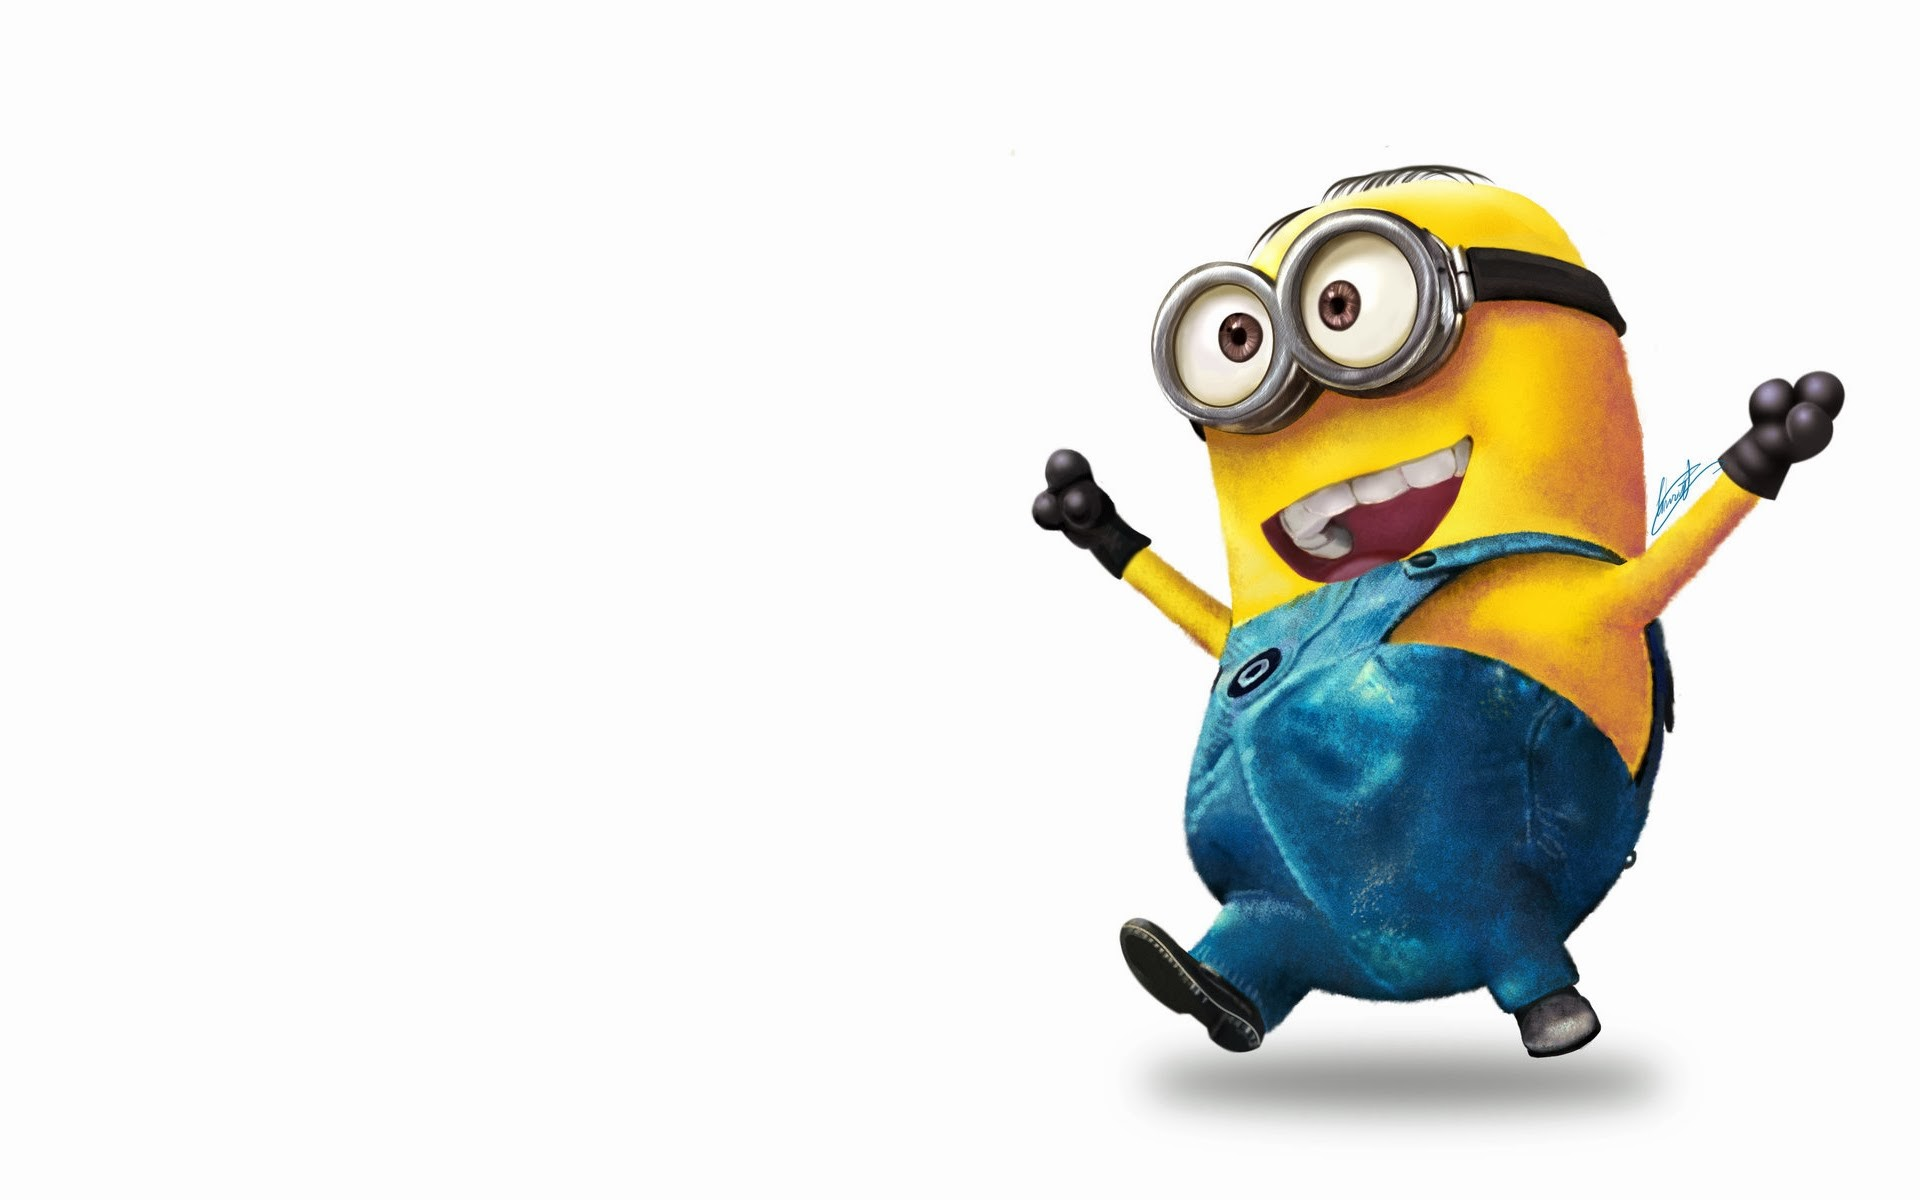 1920x1200 Minion Cute Wallpaper HD.